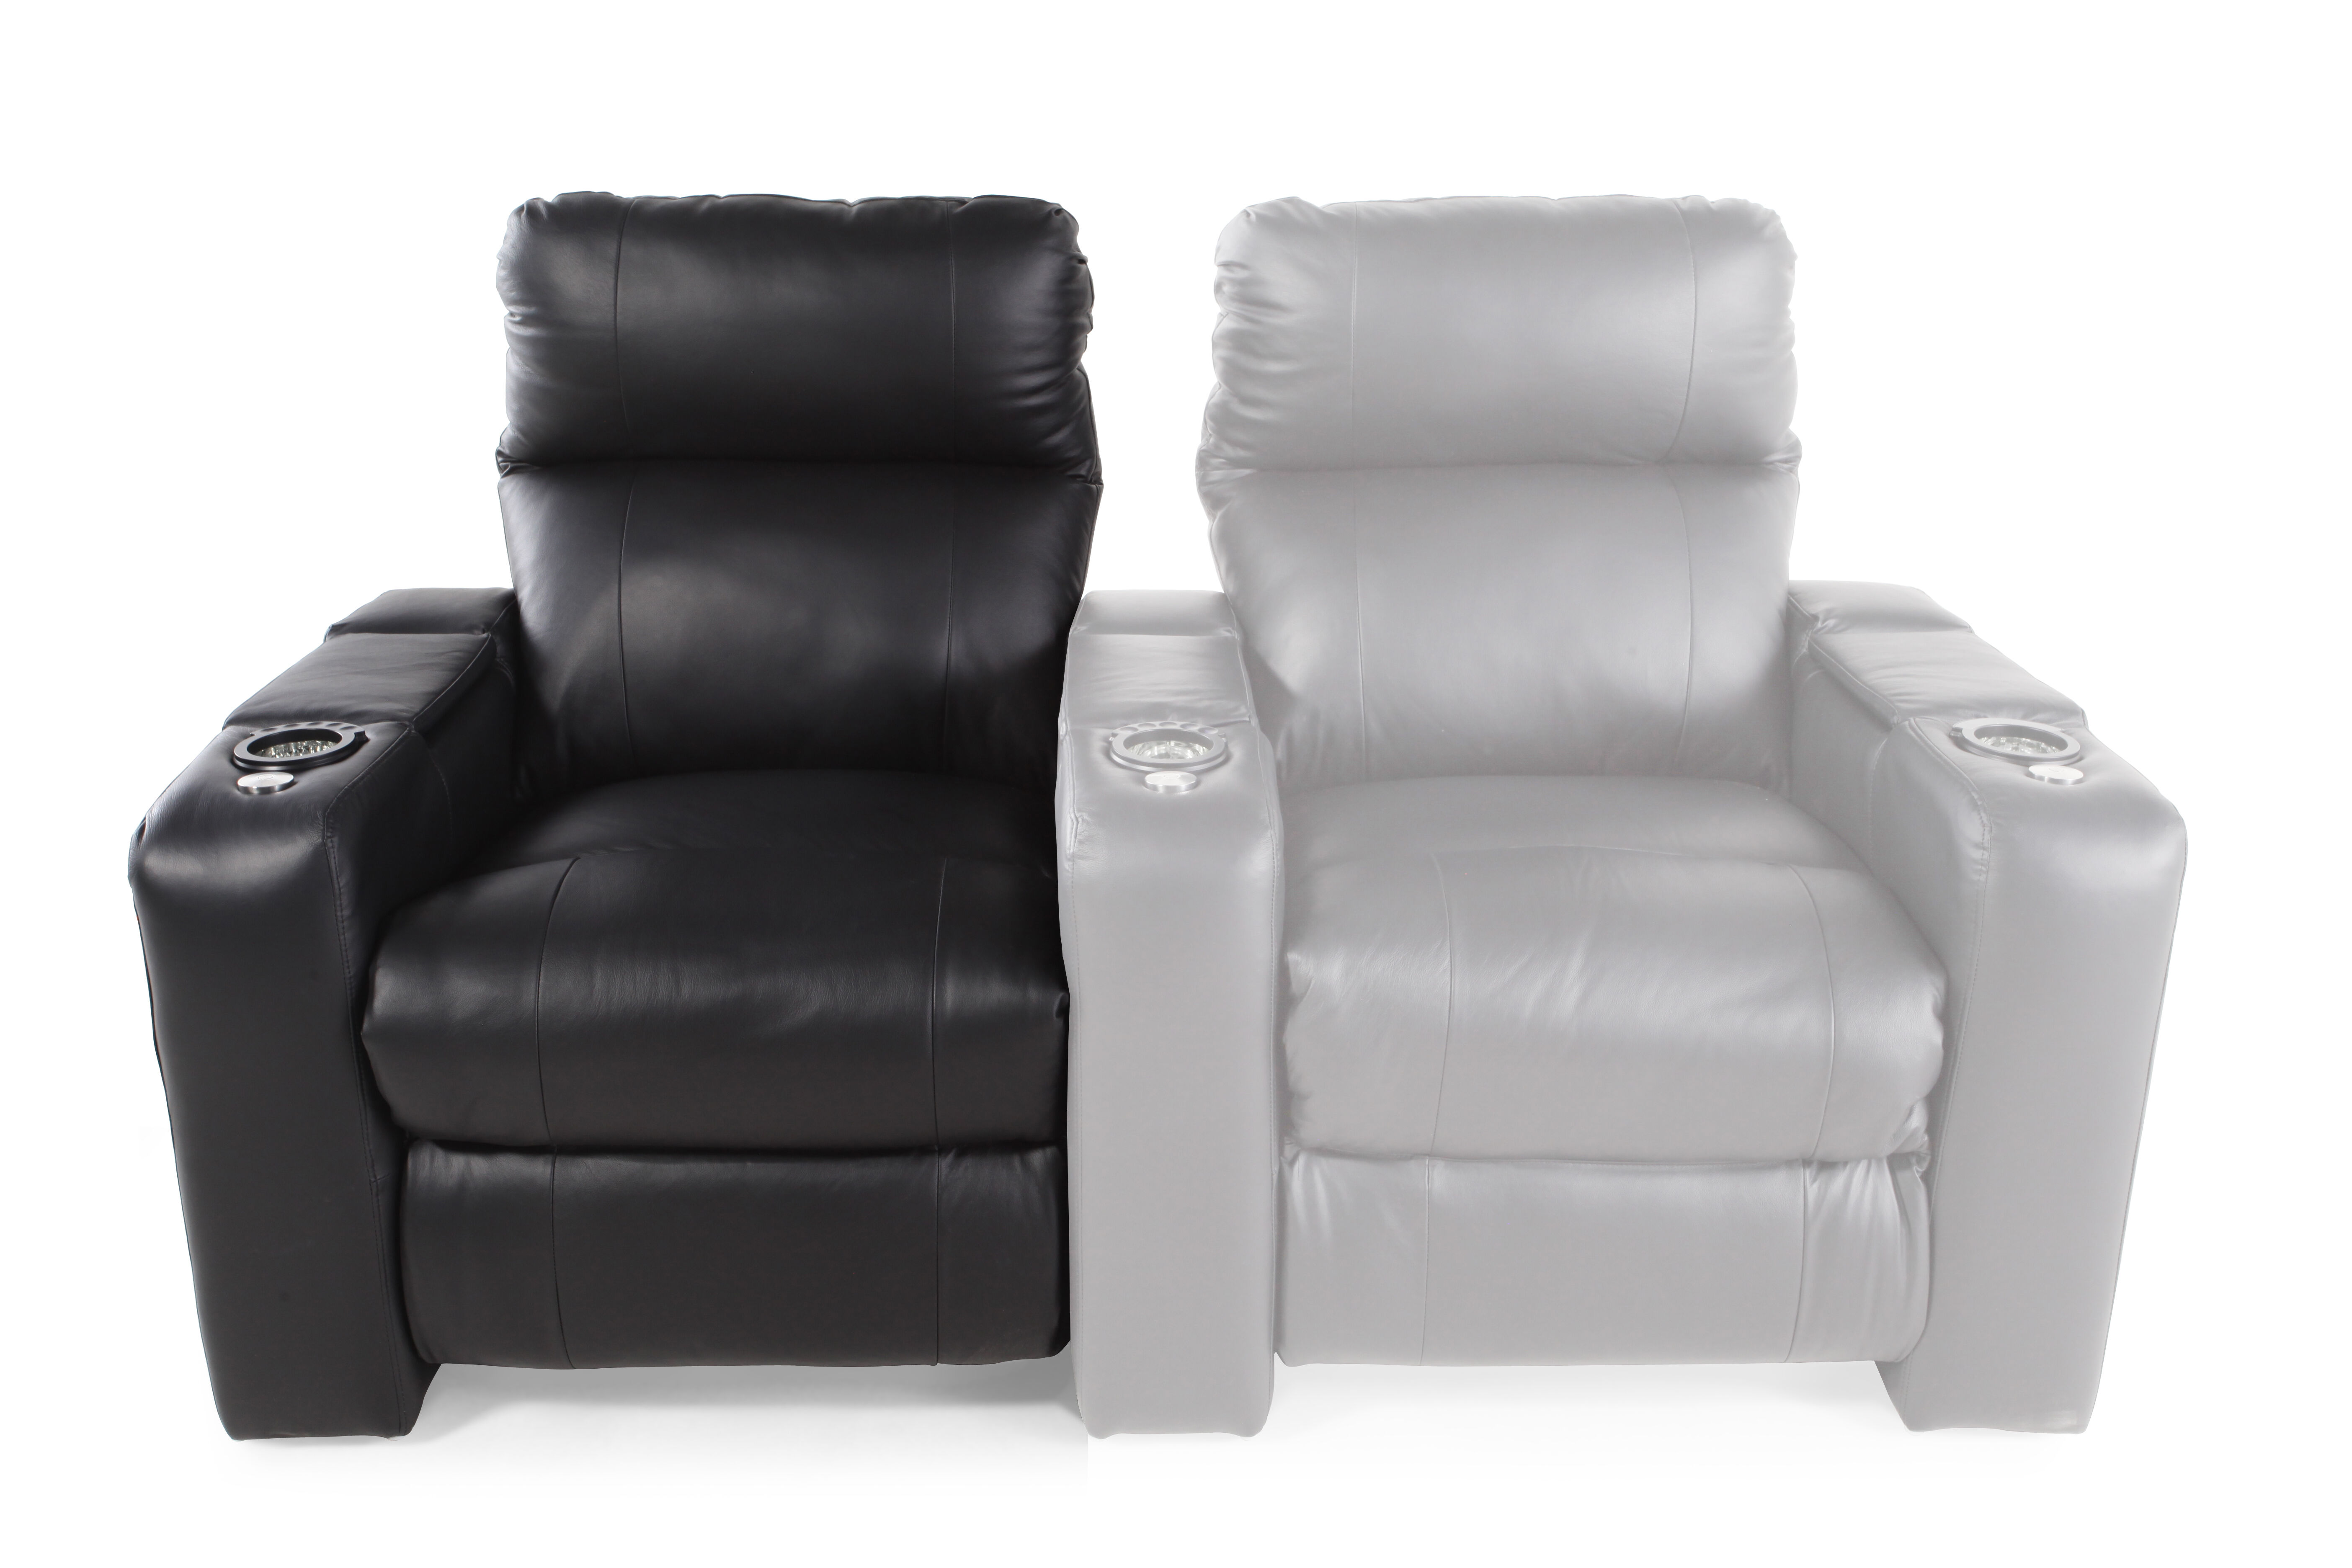 Lane End Zone One-Arm Recliner  sc 1 st  Mathis Brothers & Lane End Zone One-Arm Recliner | Mathis Brothers Furniture islam-shia.org